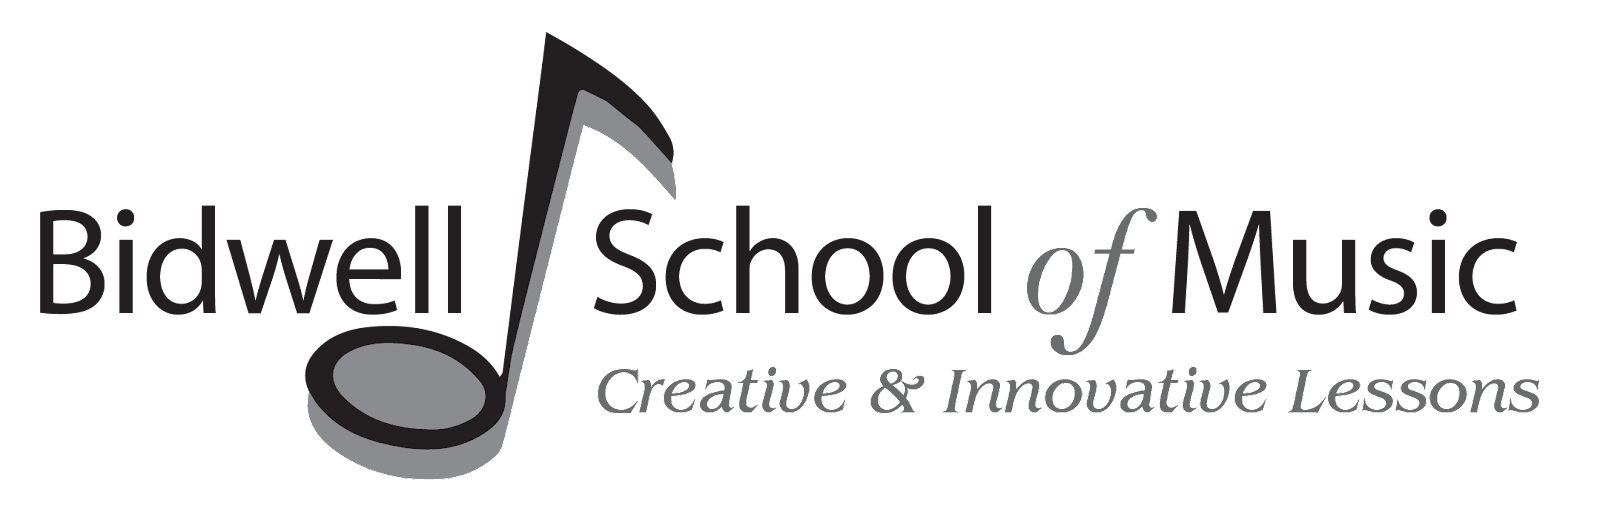 /Users/tomileedeatherage/Desktop/Bidwell School of Music logo.png